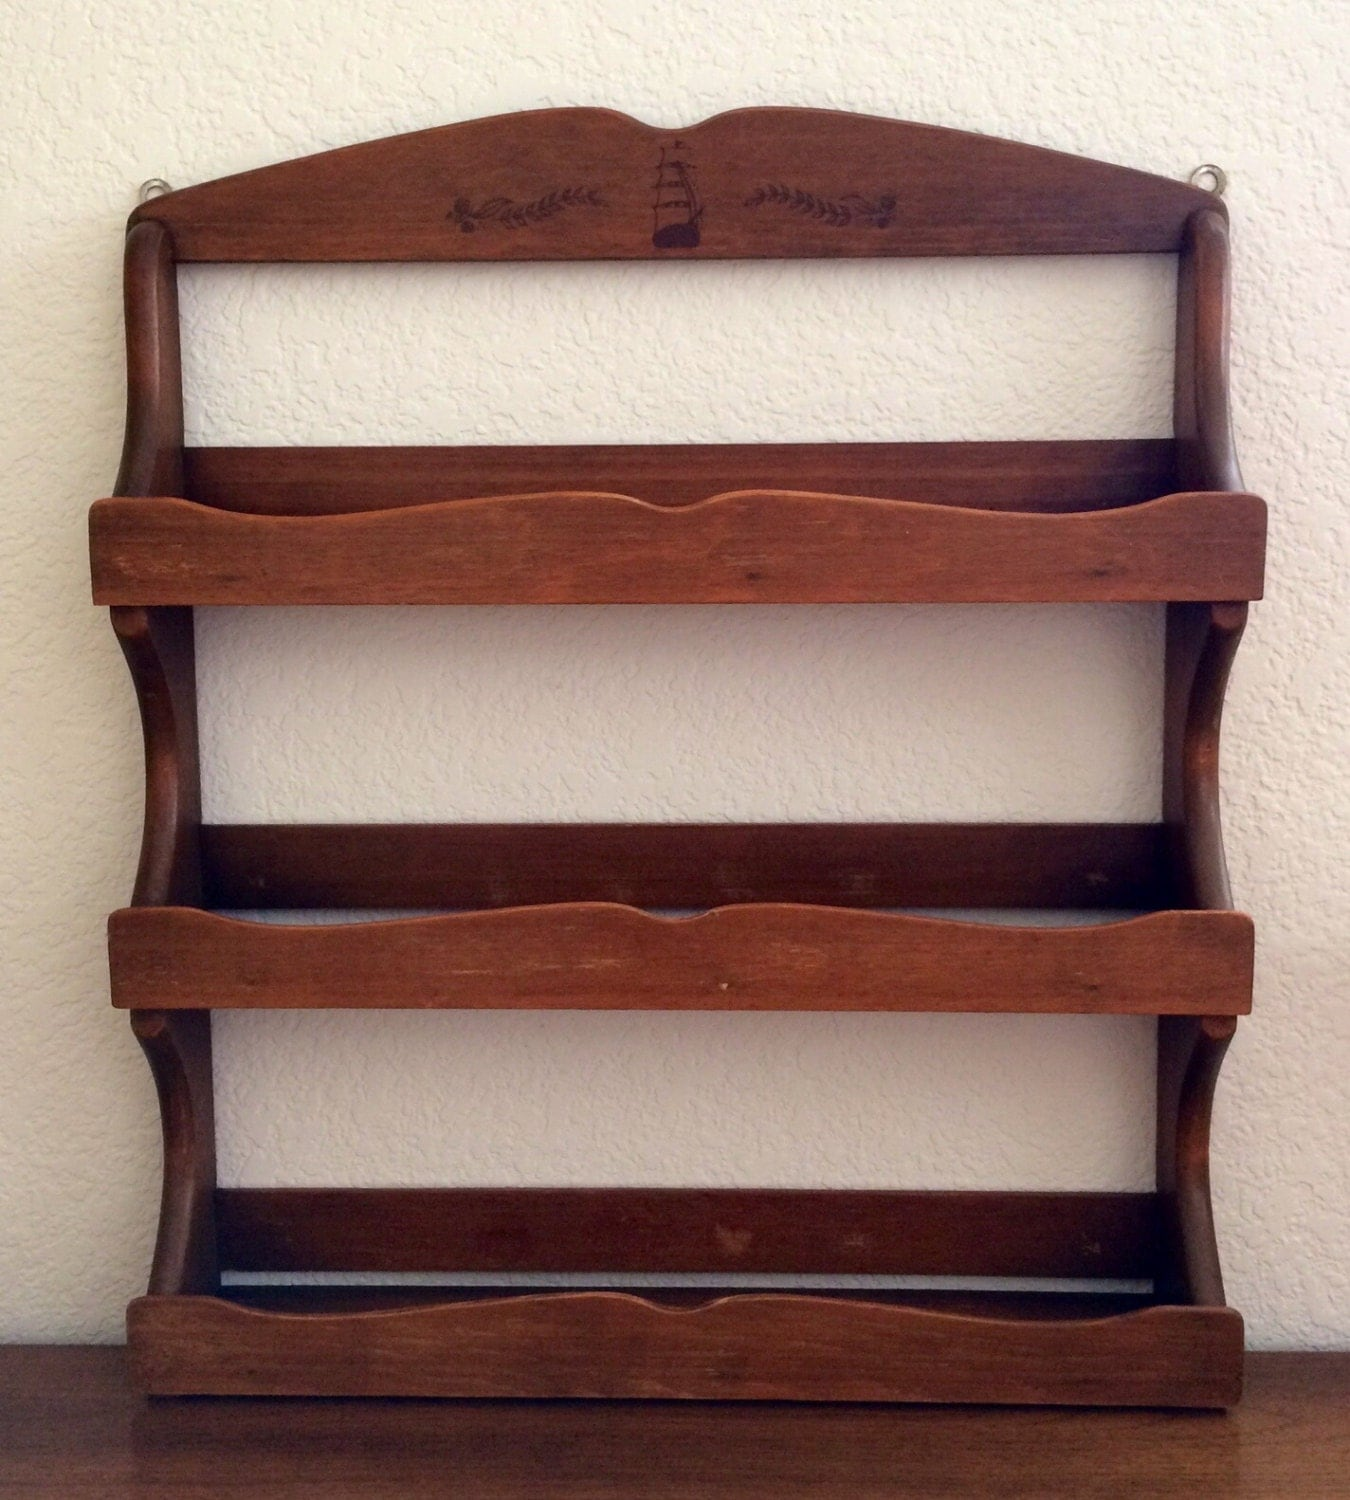 Mccormick Spice Rack: Vintage Wooden Spice Rack McCormick Schilling 3-Tier Spice